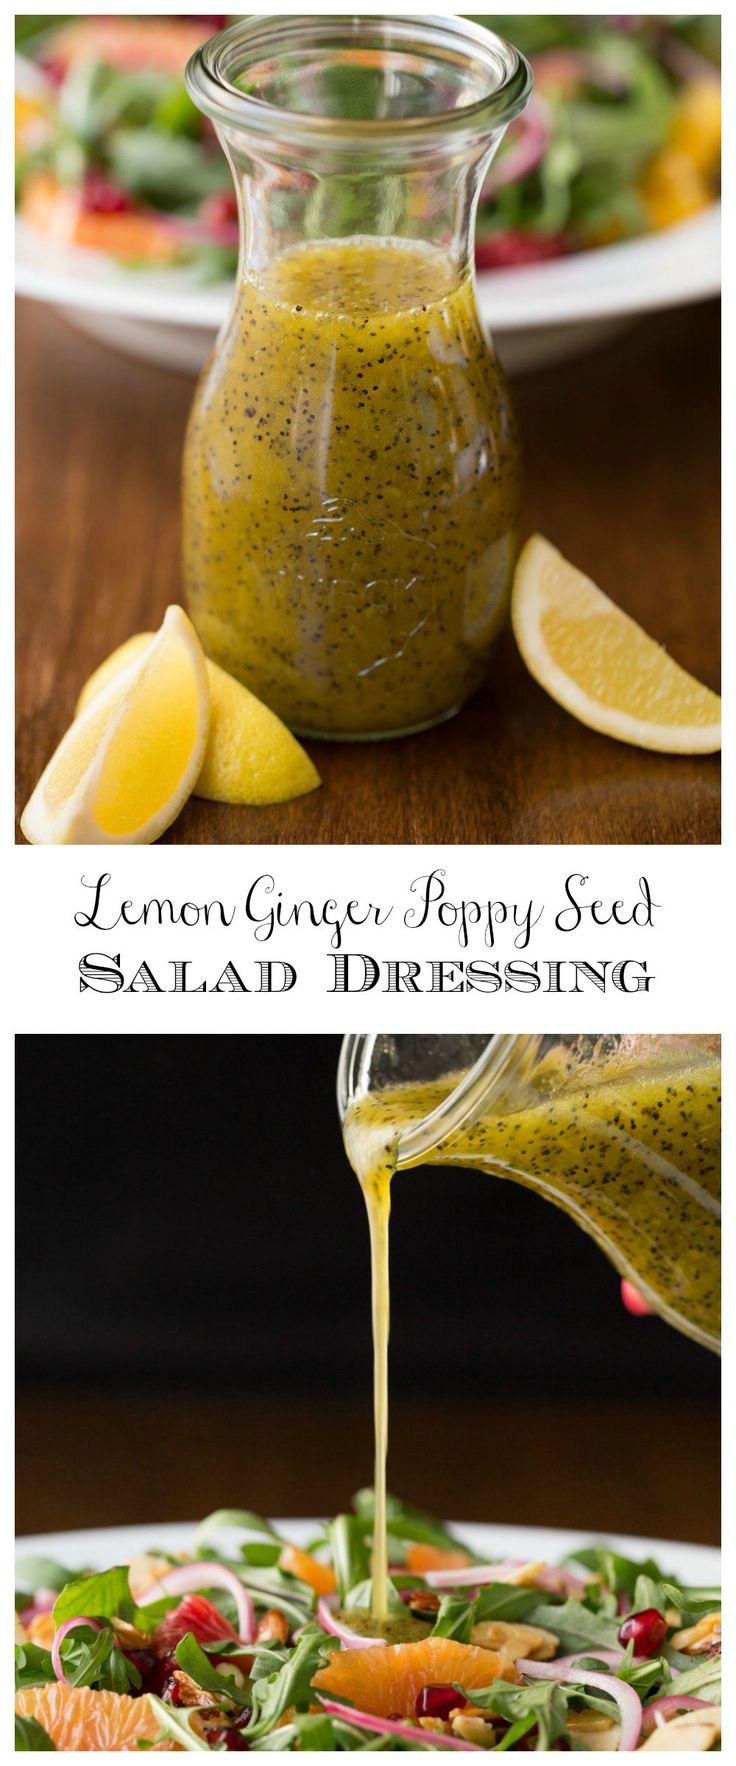 Lemon Ginger Salad Dressing - this super easy dressing transform boring greens to bright fresh and delicious salads.